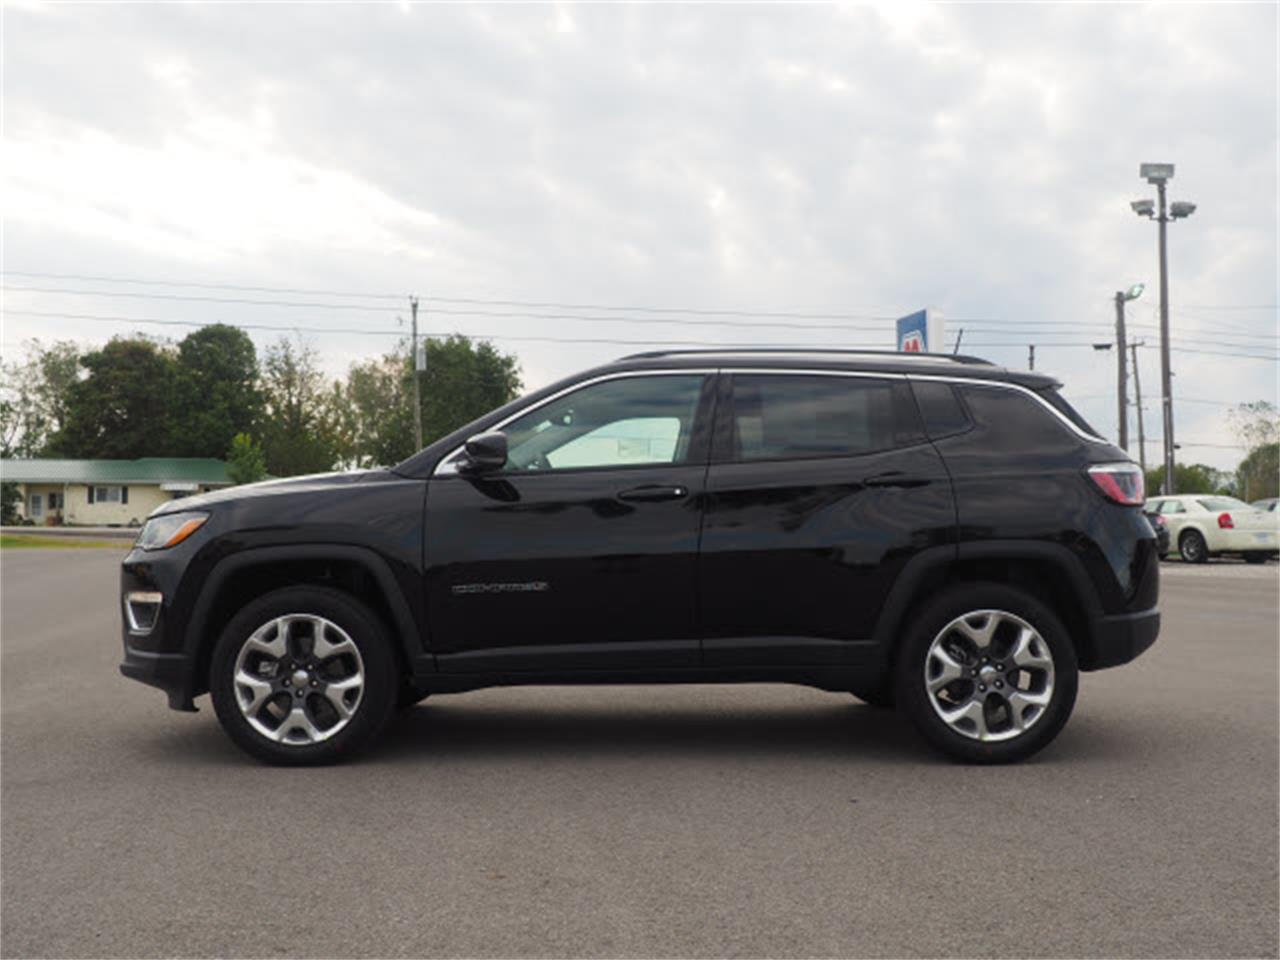 2020 Jeep Compass (CC-1327534) for sale in Marysville, Ohio